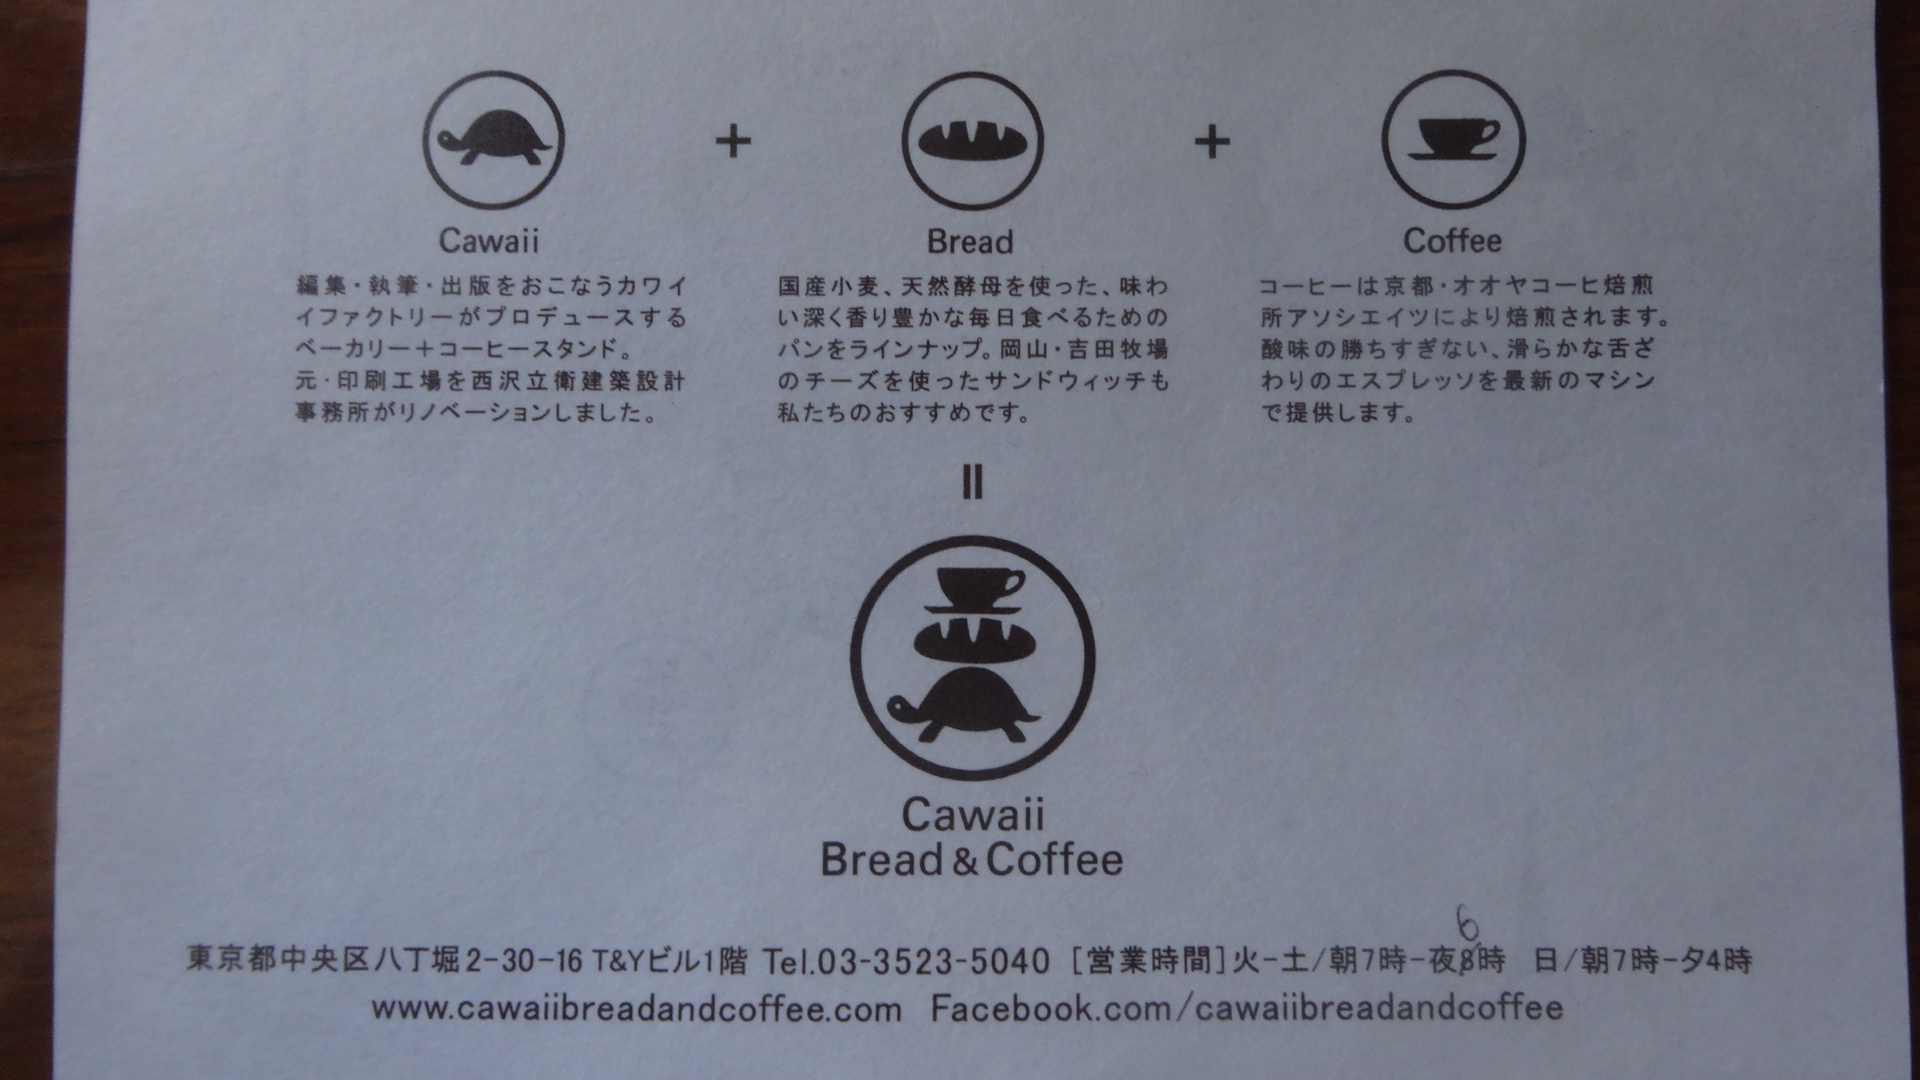 Cawaii Bread & Coffeeのカード